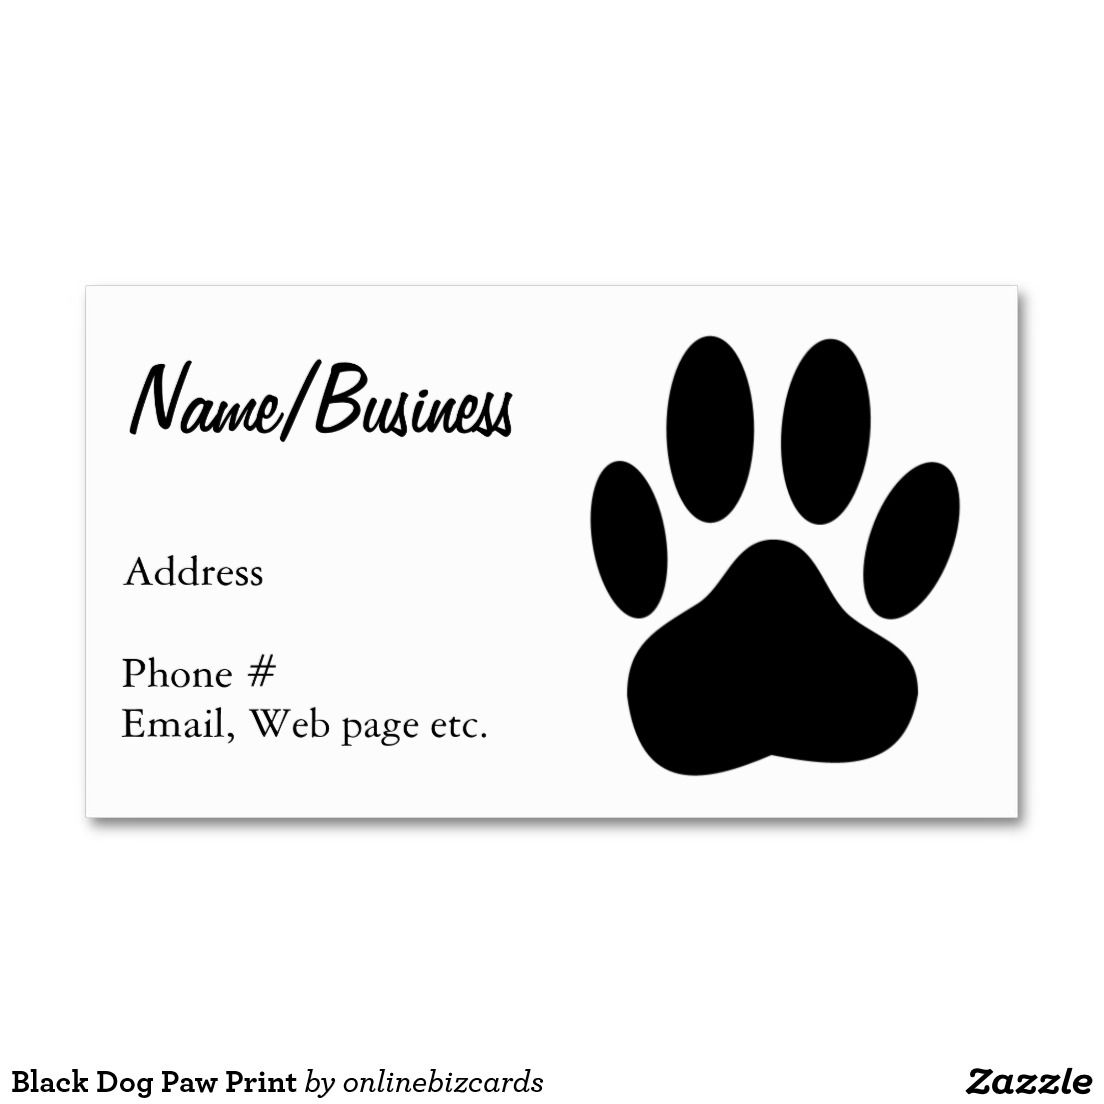 Black Dog Paw Print Business Card Zazzle Com Dog Paw Print Printing Business Cards Dog Paws